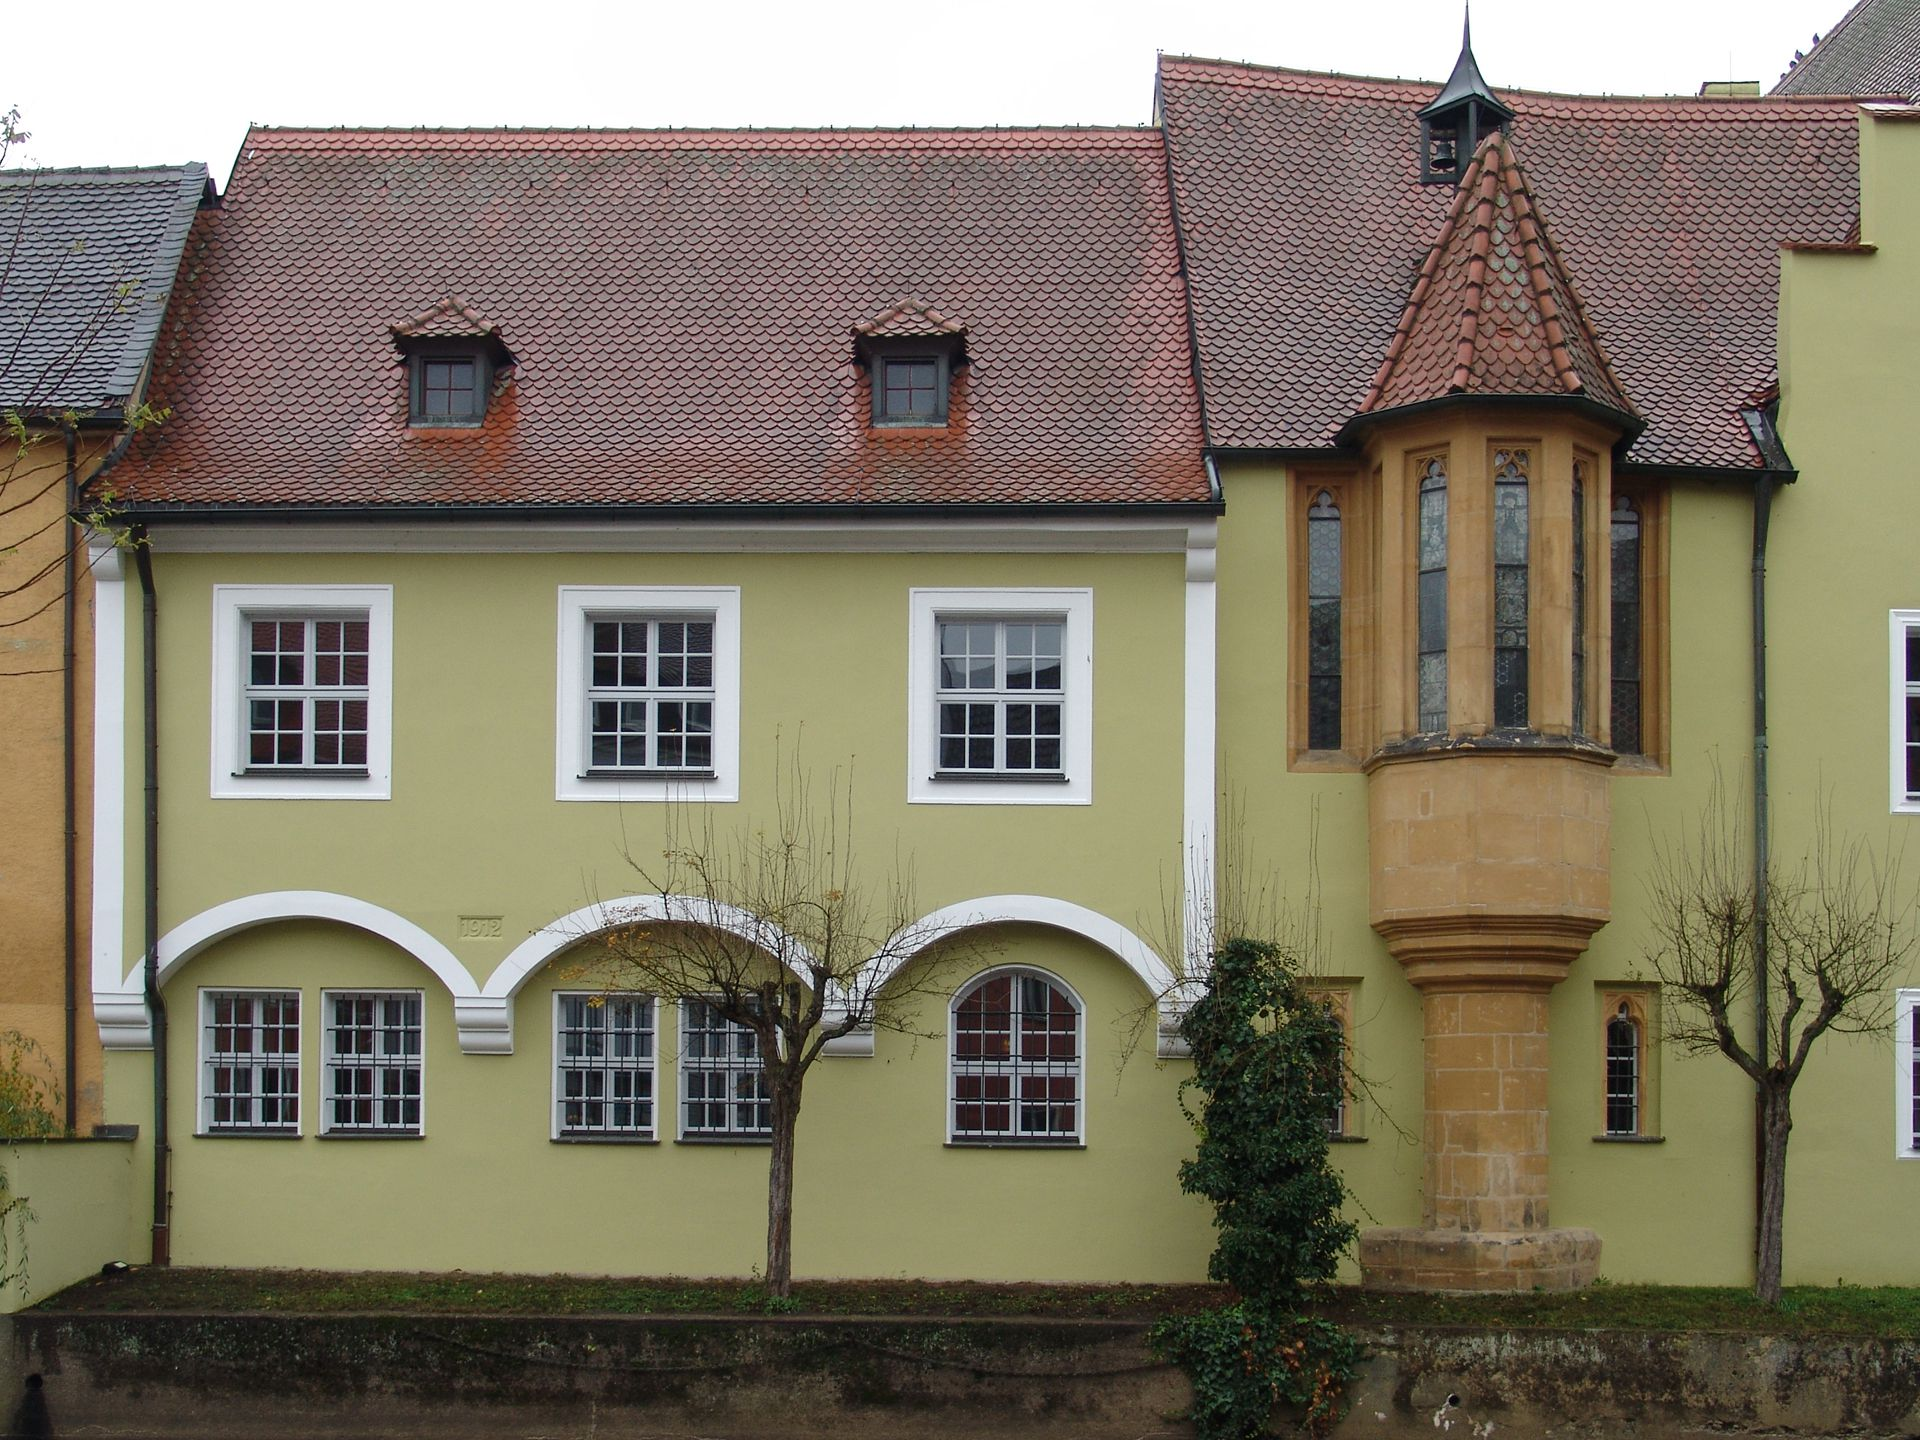 Klösterl (Amberg), extension of the south wing Extension of the south wing (right: chapel oriel from the time before 1400)